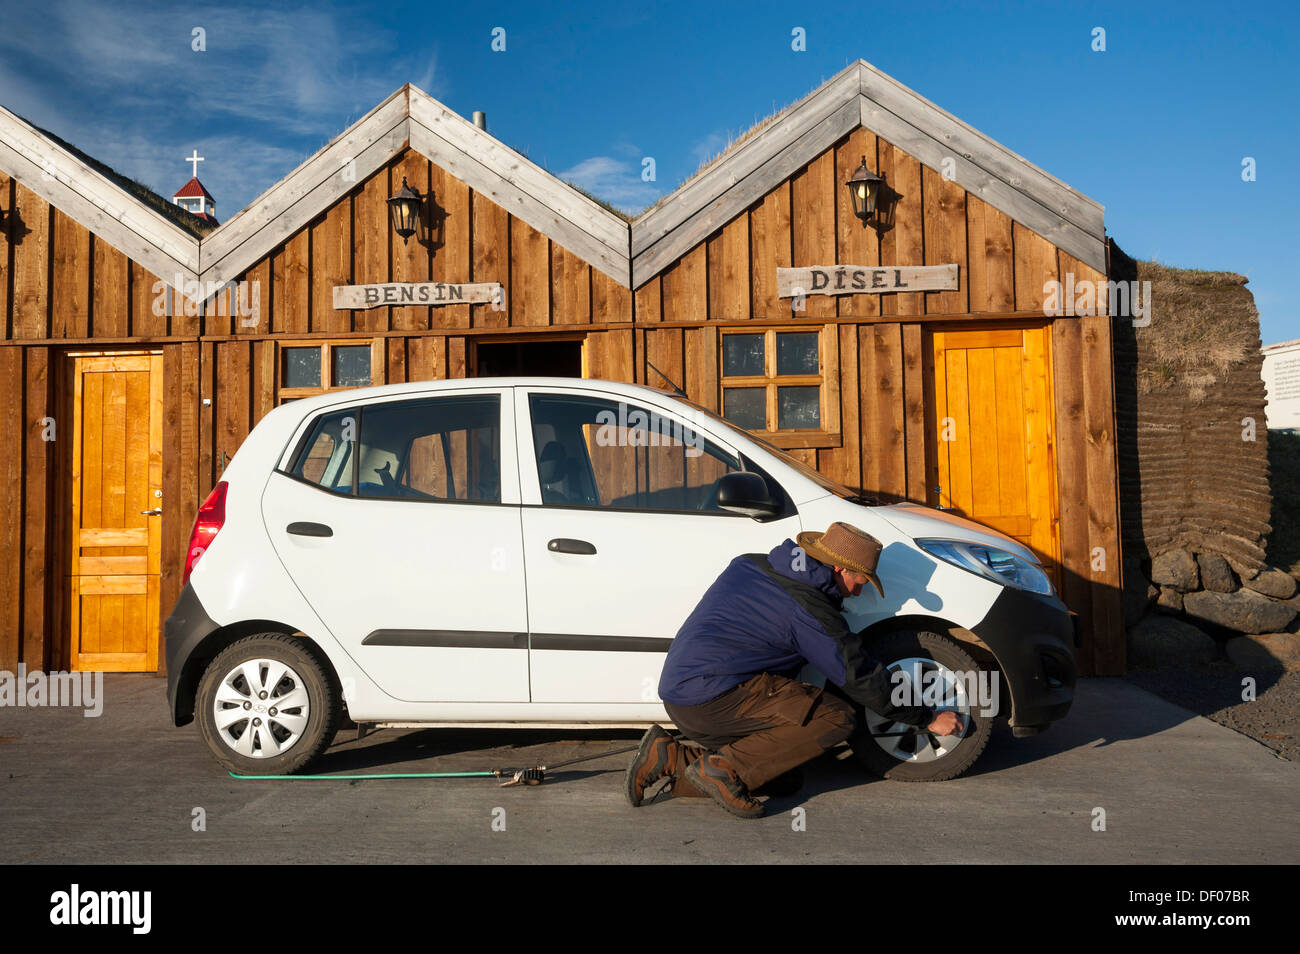 Man kneeling next to a car checking the tyre pressure, petrol station in a wooden hut, Moeðrudalur, Highlands of Iceland - Stock Image